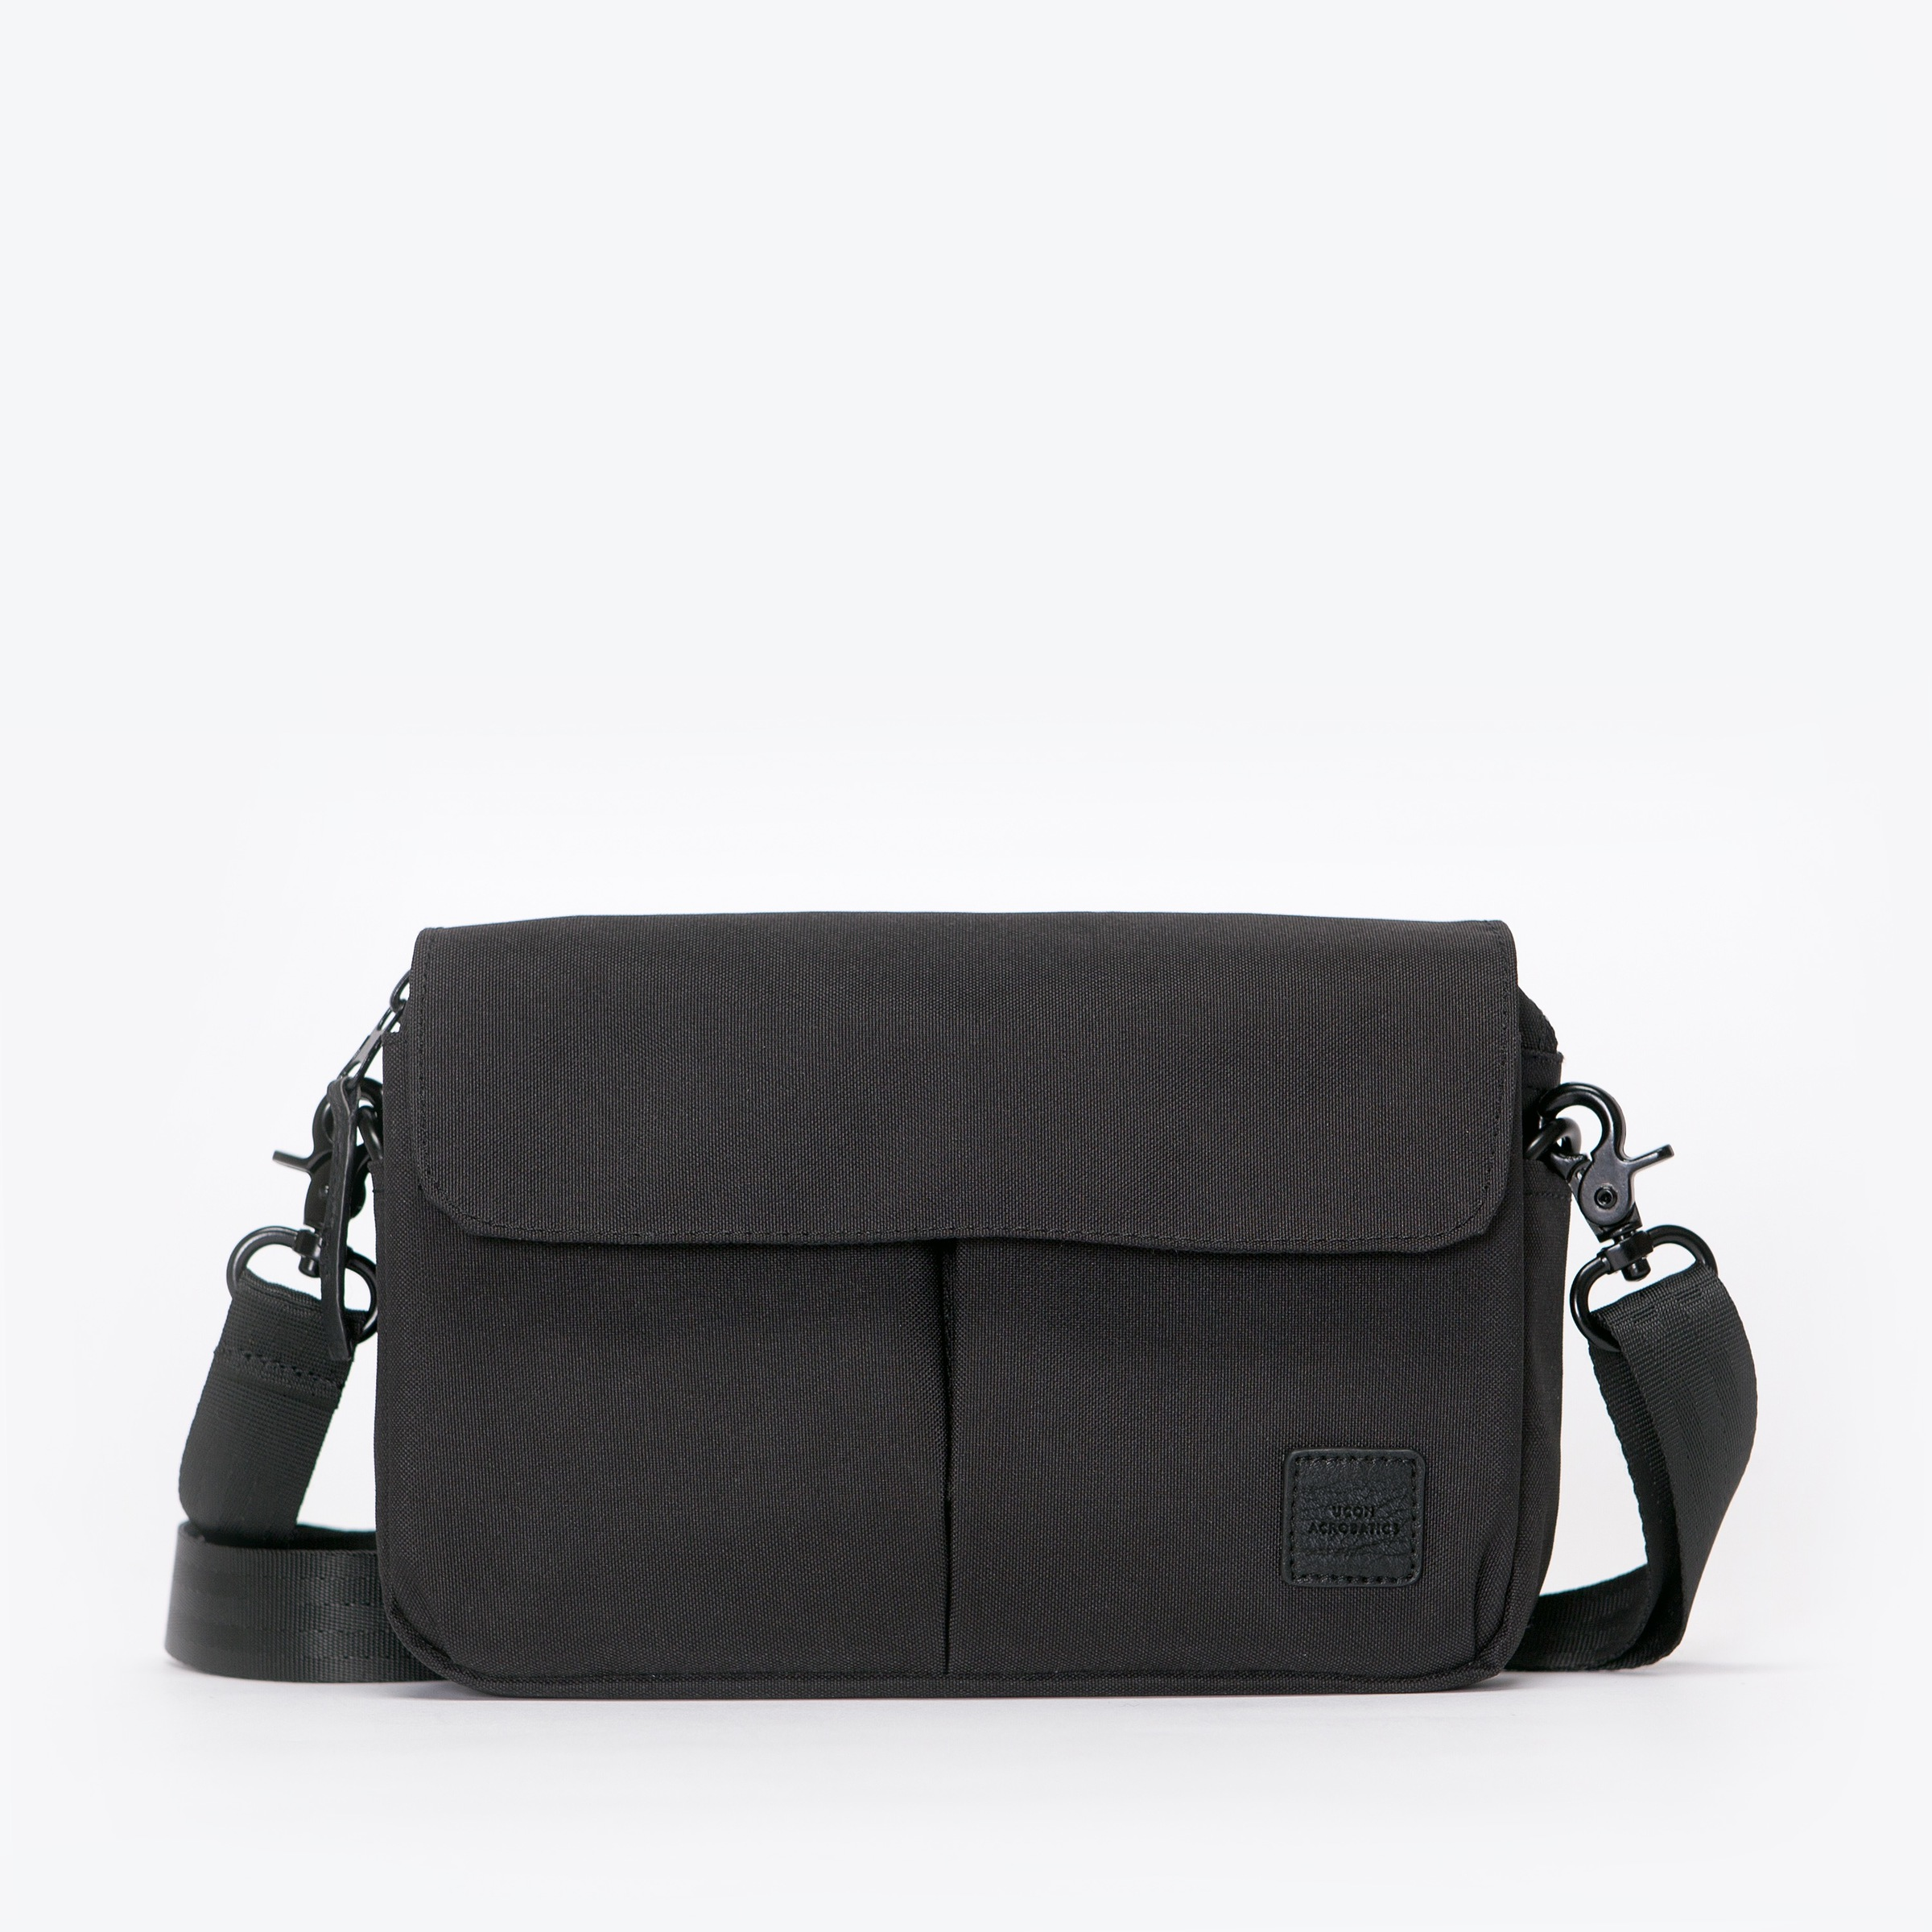 UA-SB-02_Sakura-Bag_Black_02.jpg